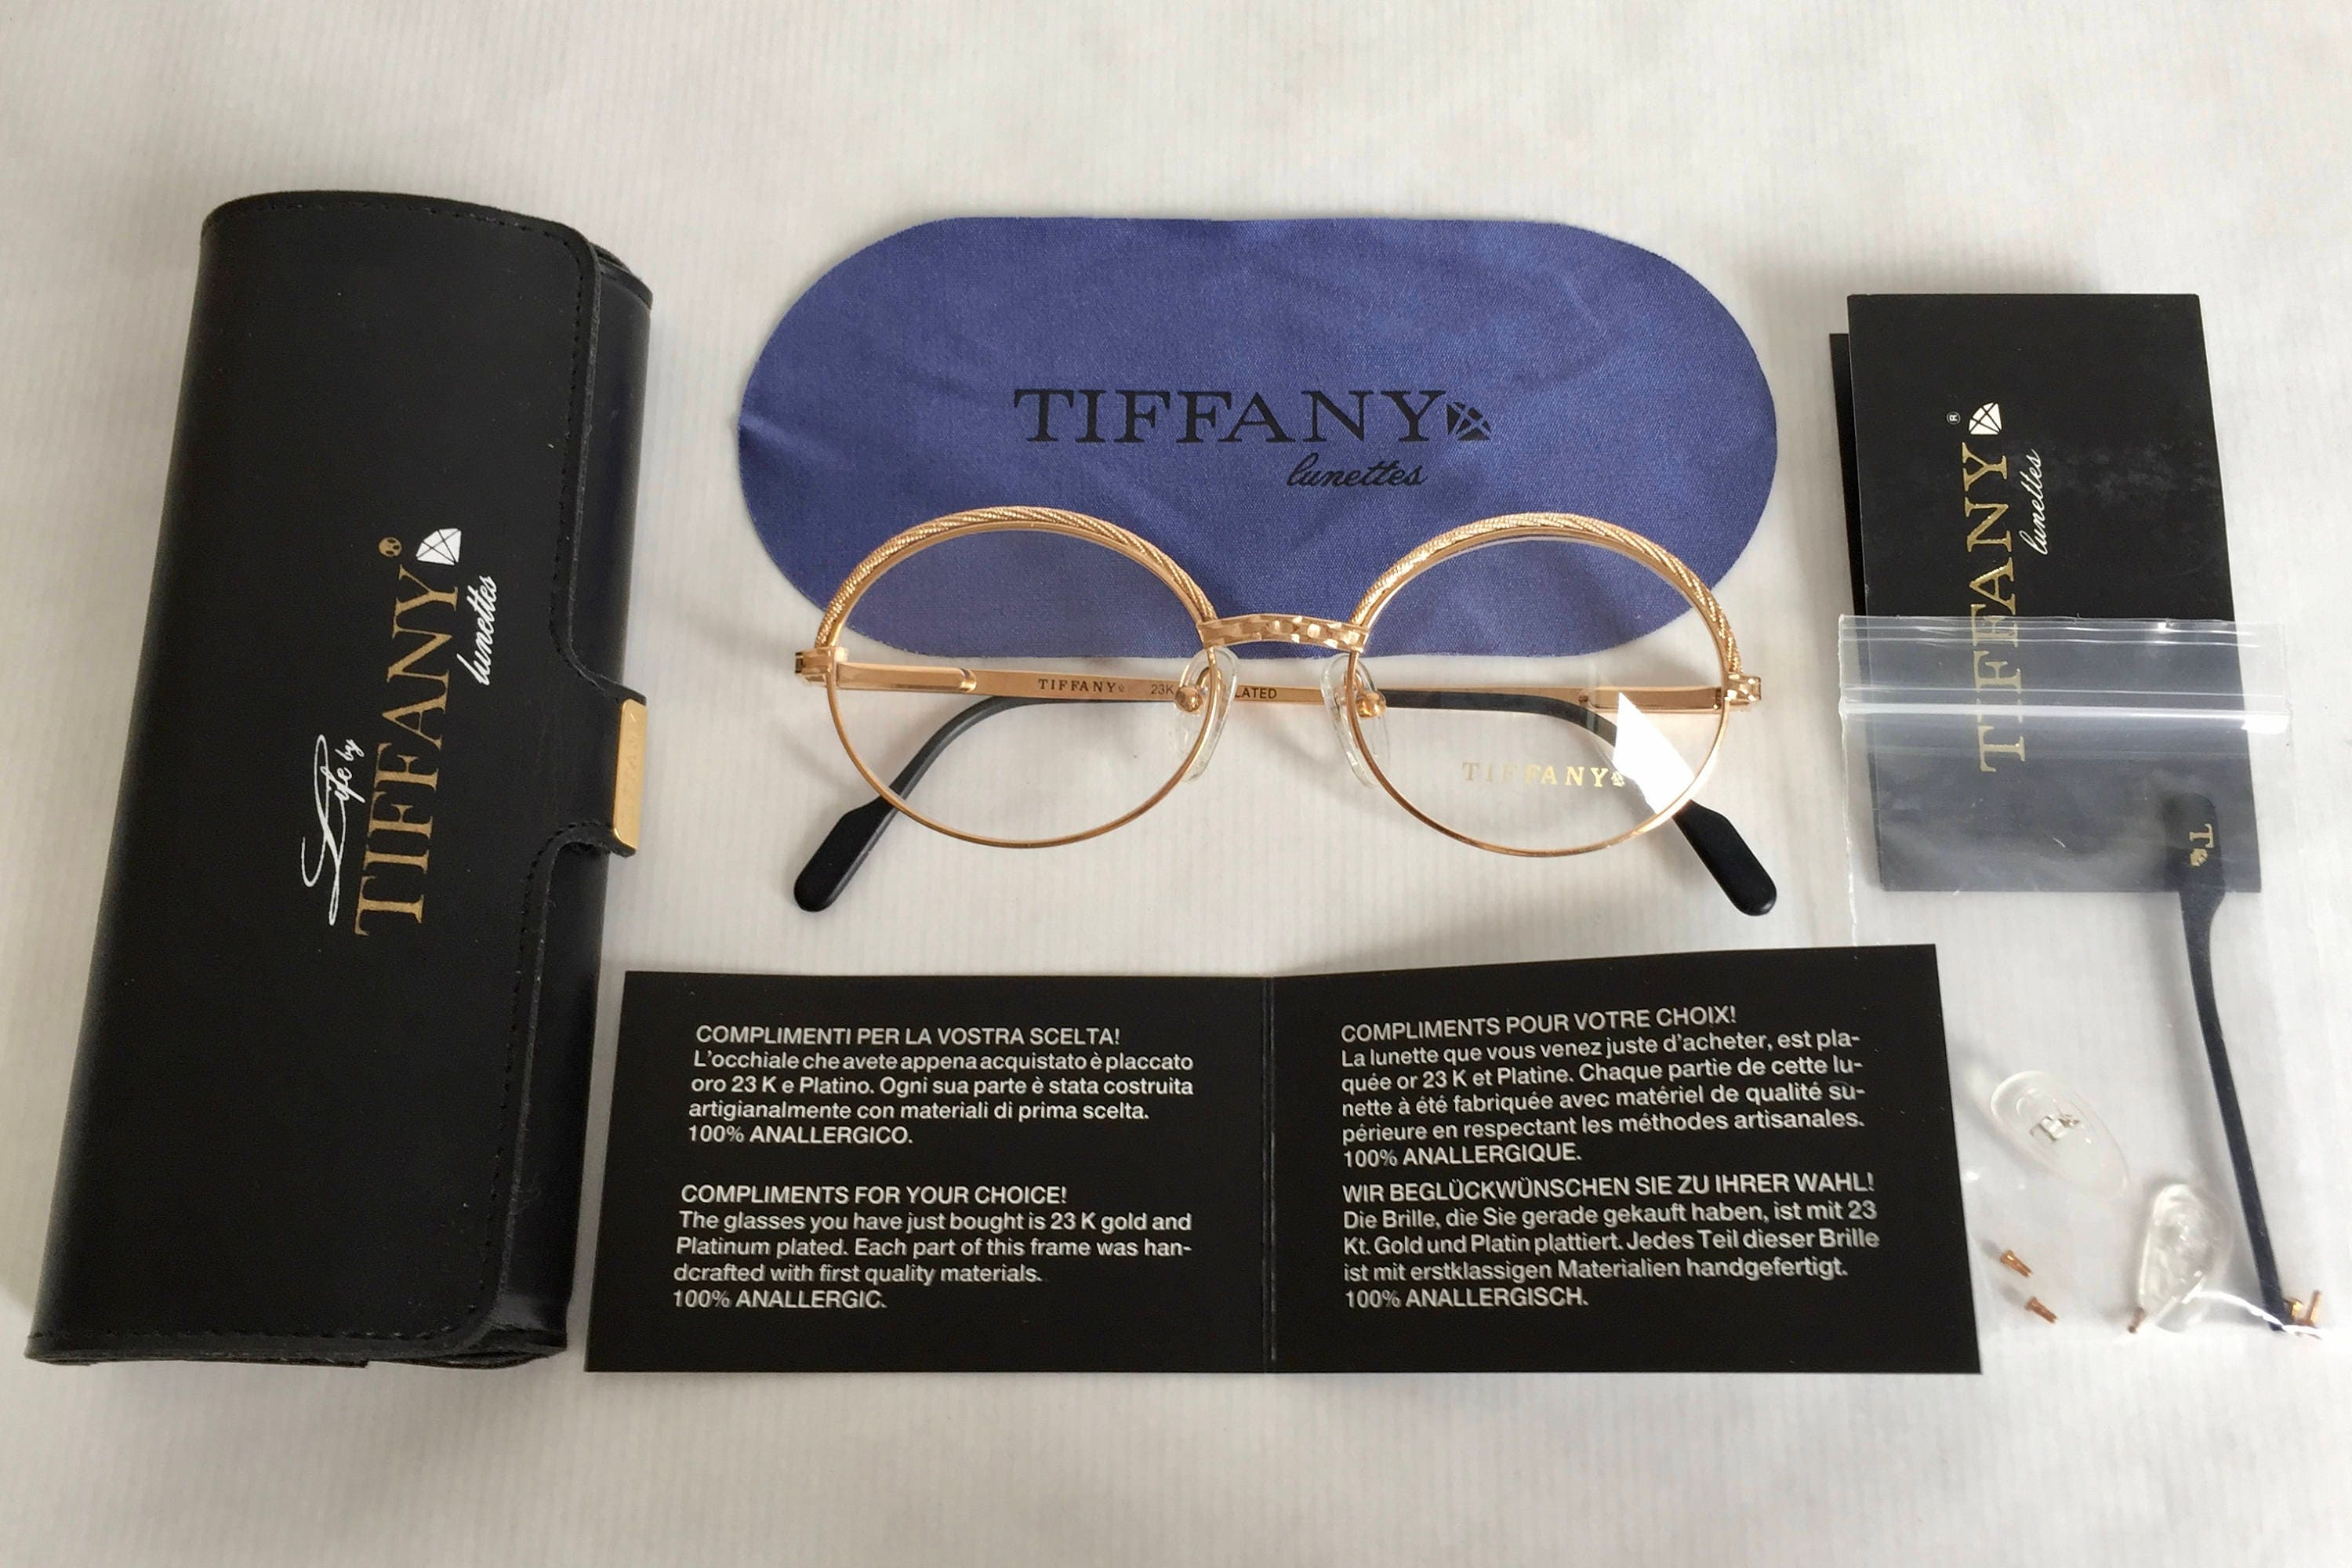 a38af006f93d Tiffany Lunettes T72 Vintage Glasses 23Kt Gold Plated - Full Set ...